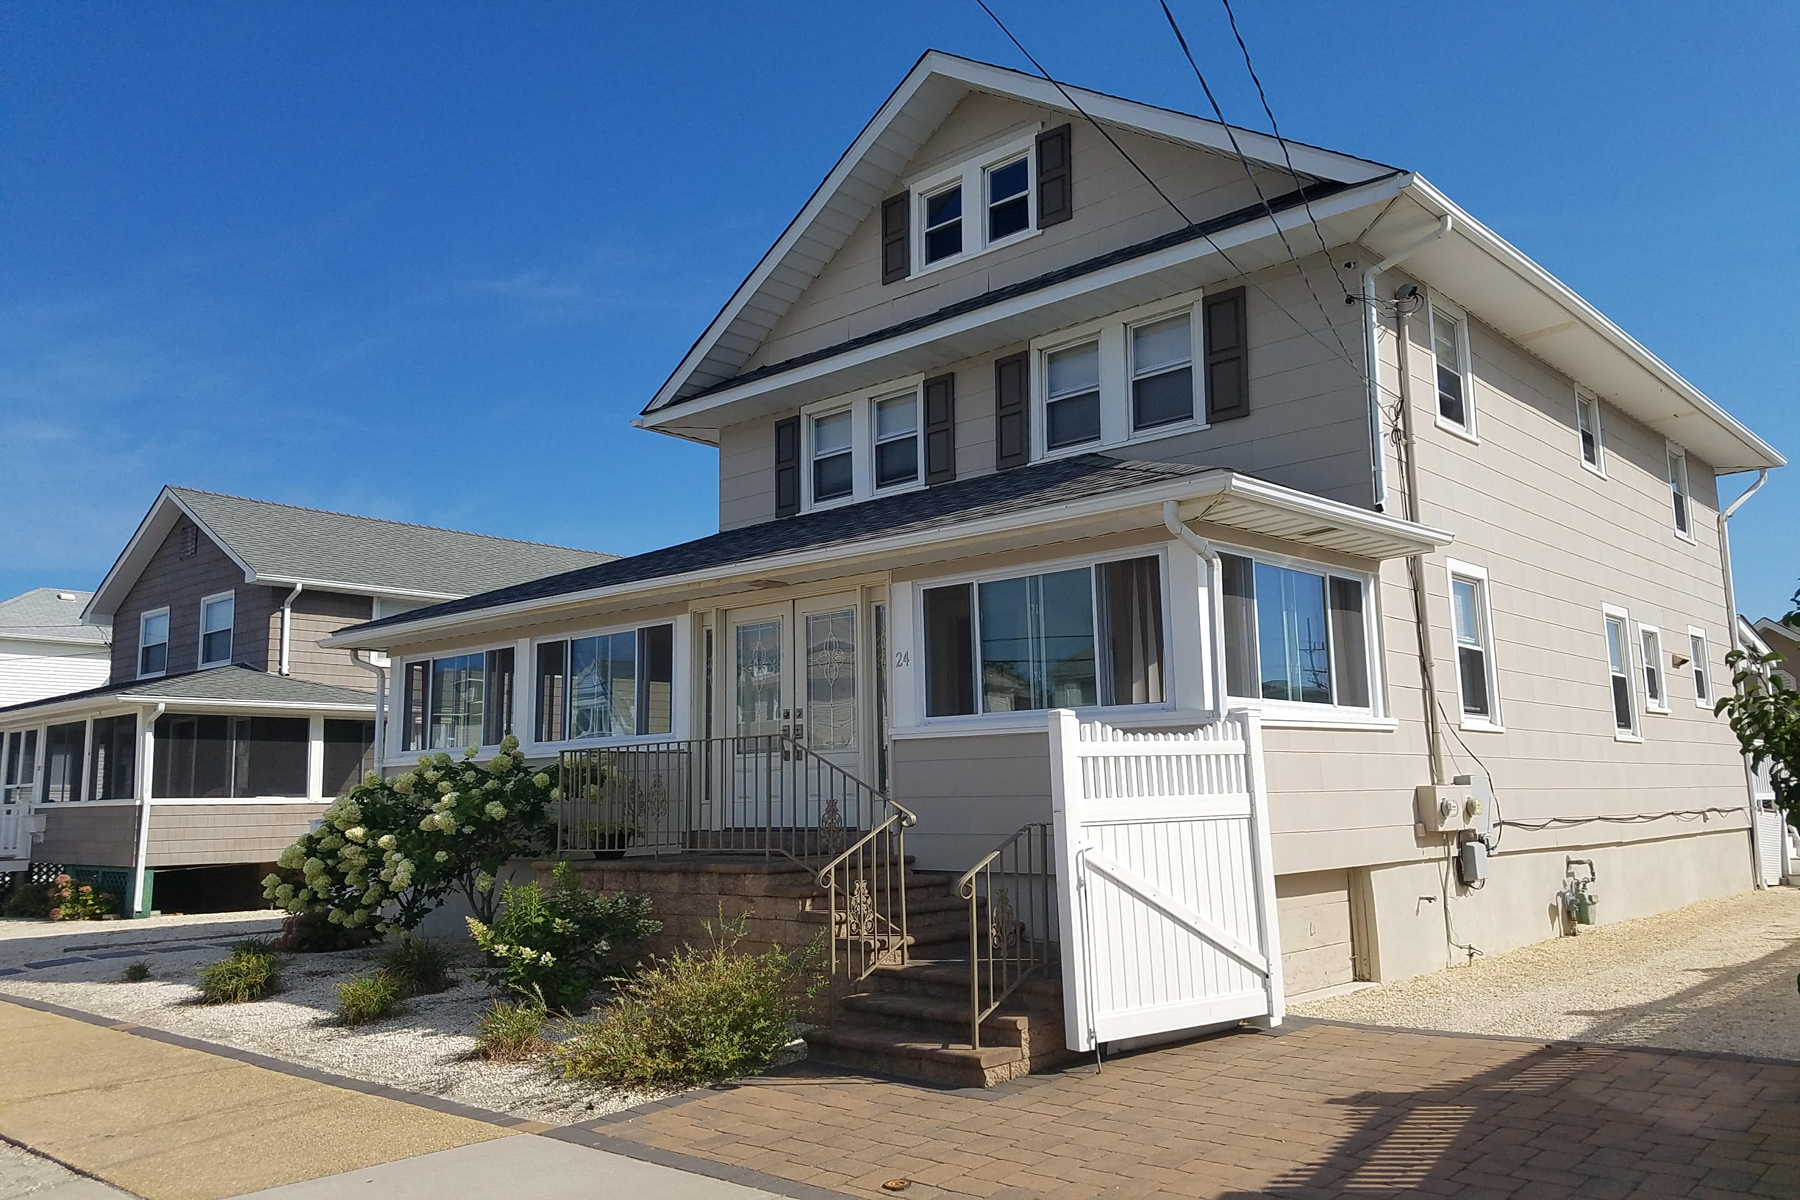 Single Family Home for Sale at Distinguished Classic Oceanblock Shore Colonial 24 Reese Avene, Lavallette, New Jersey 08735 United States